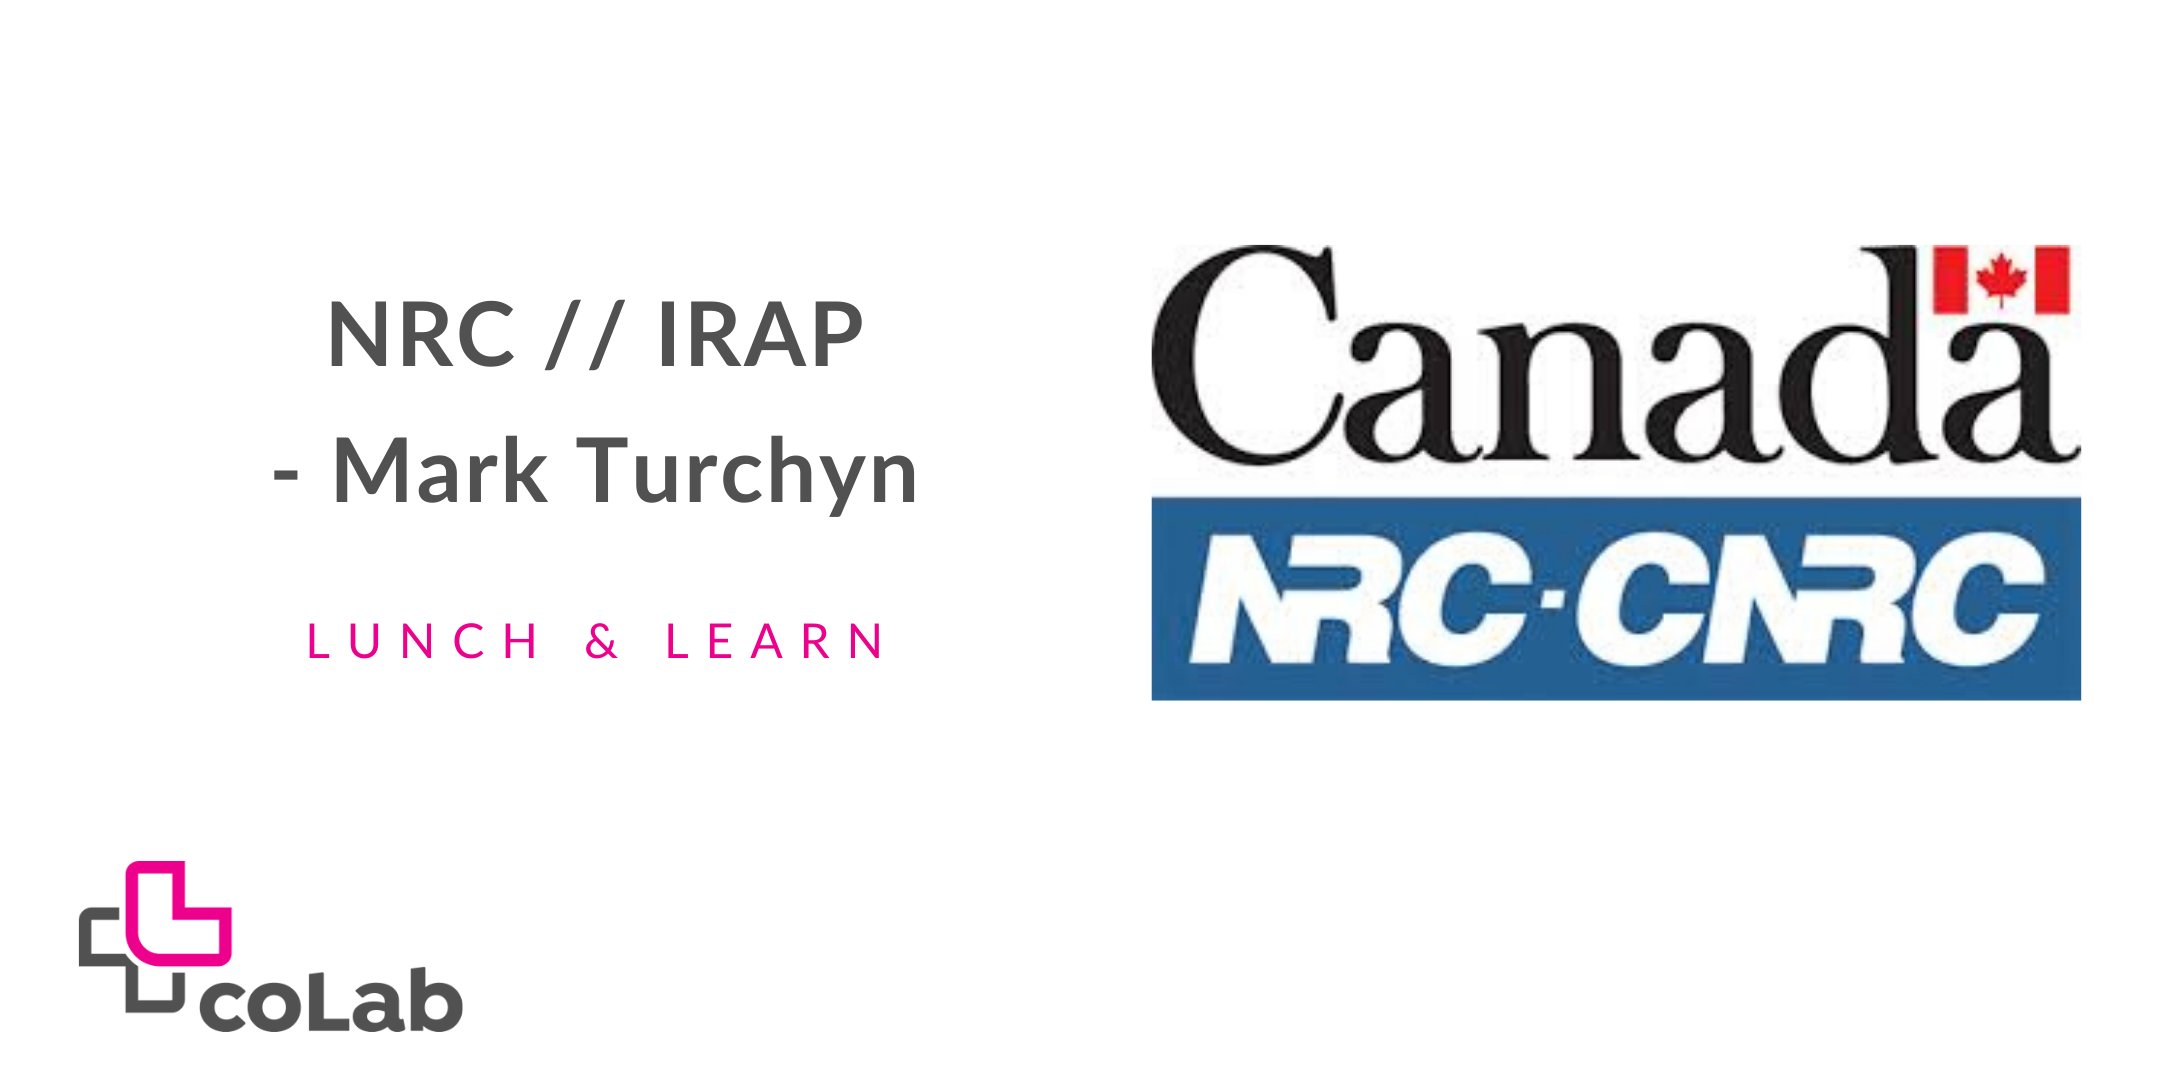 NRC - IRAP Lunch & Learn